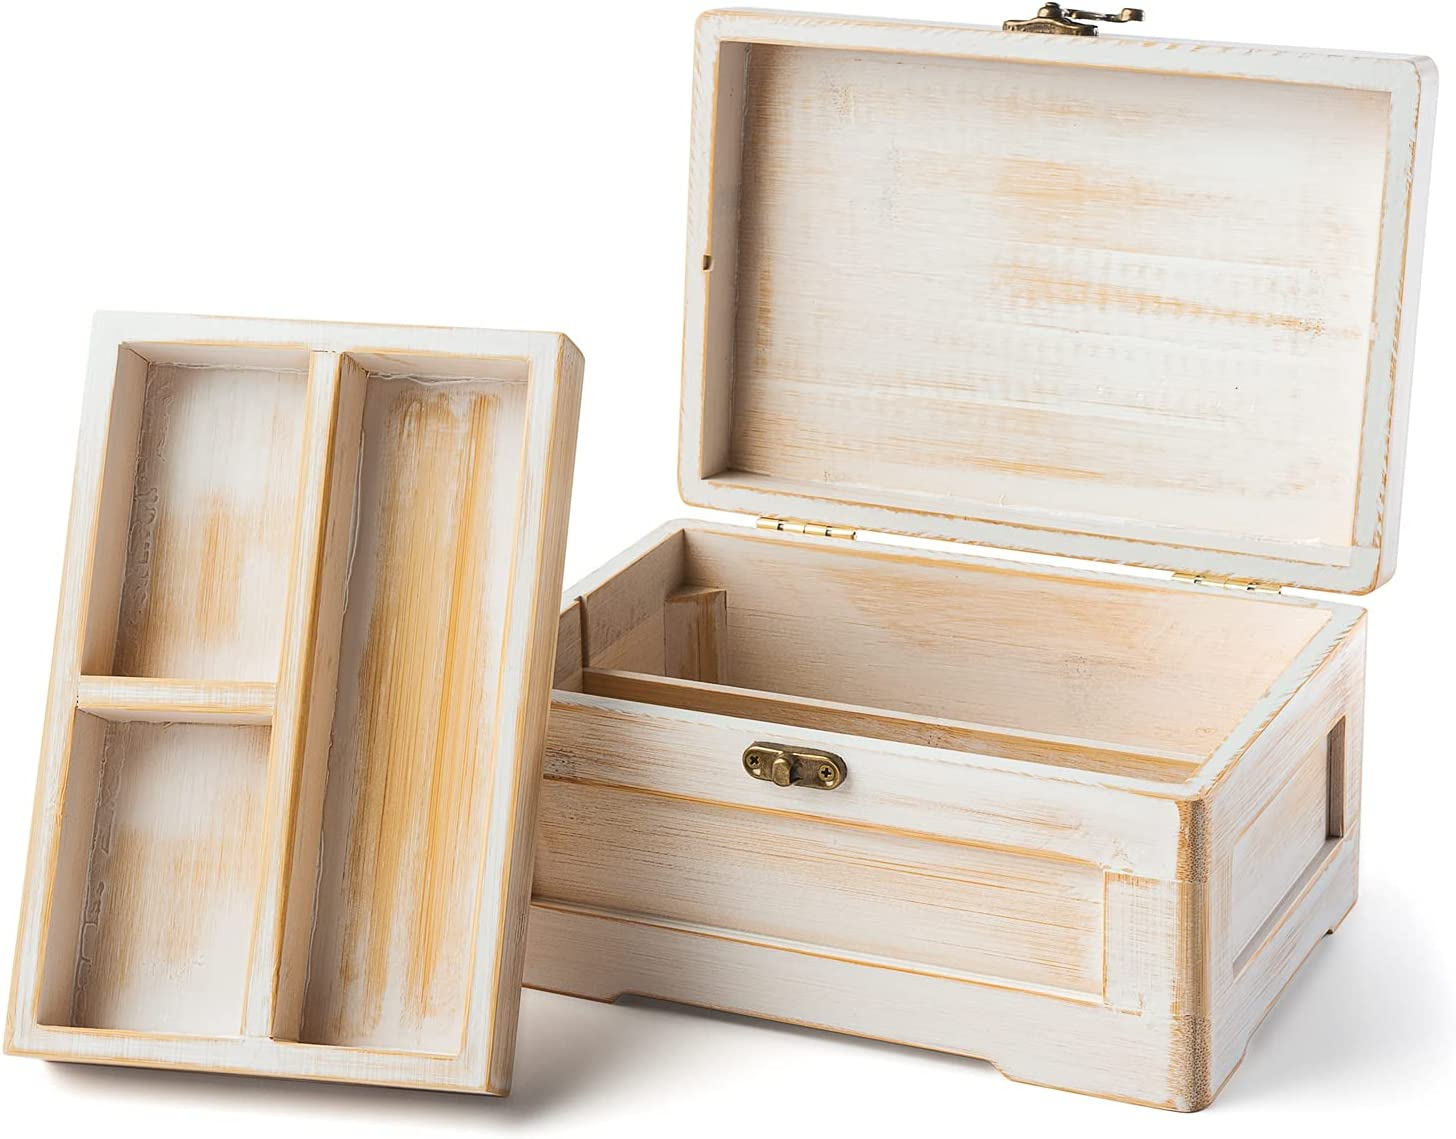 Wooden Stash Box Minneapolis Mall with Rolling to Combo y Organise Max 69% OFF Tray